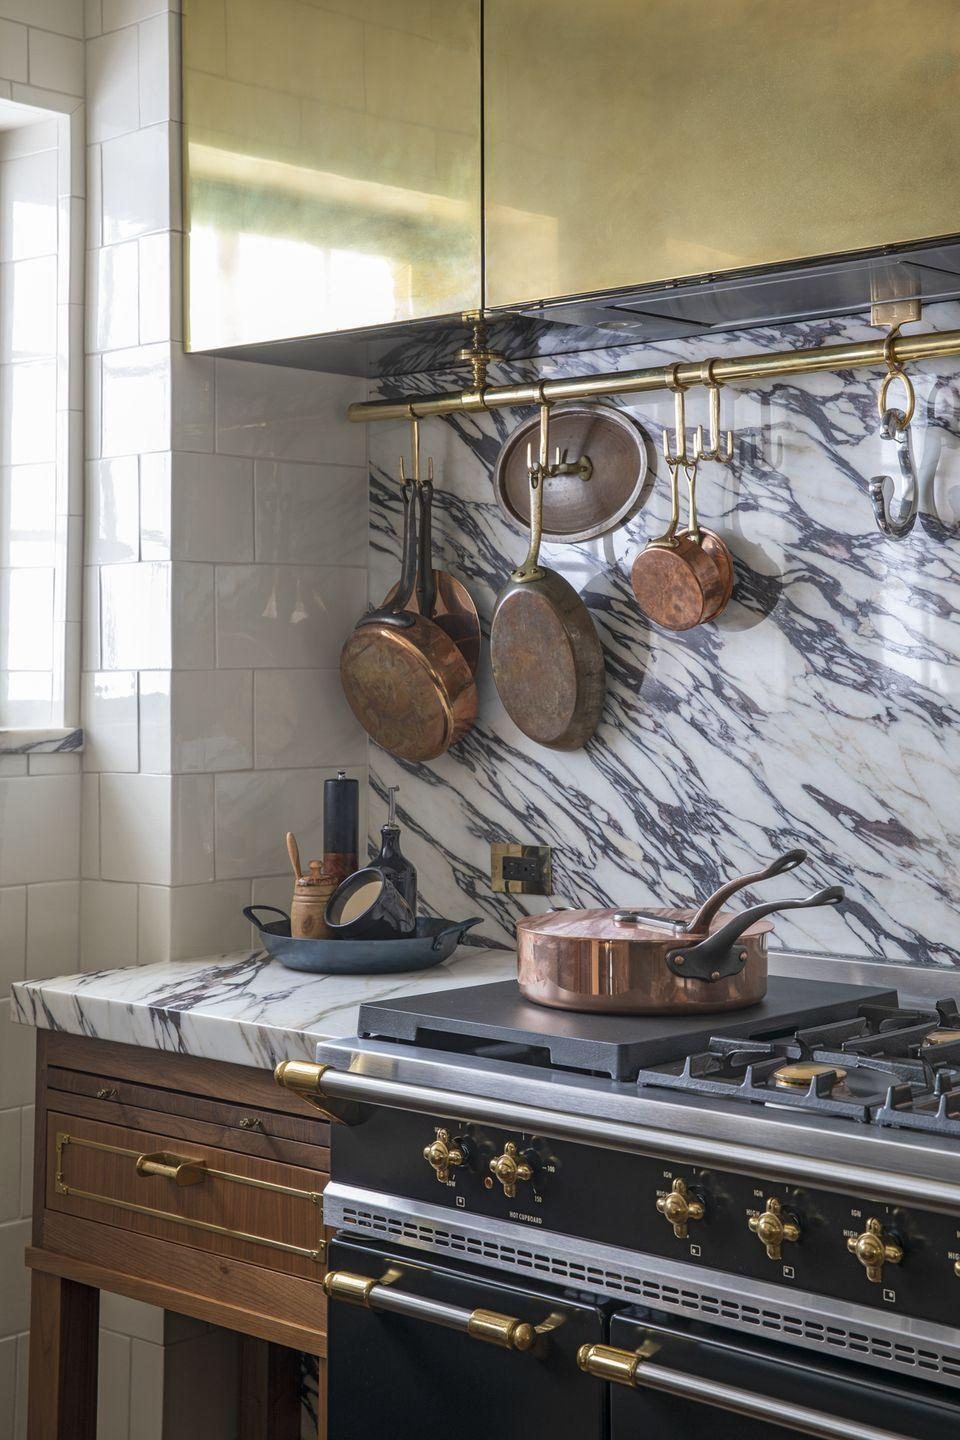 "<p>Not everything has to be put away! You can add appliances that go with the overall look of your kitchen and also <a href=""https://www.housebeautiful.com/lifestyle/organizing-tips/g4436/kitchen-organization-makeover/"" rel=""nofollow noopener"" target=""_blank"" data-ylk=""slk:create extra storage"" class=""link rapid-noclick-resp"">create extra storage</a> for a touch of personality, like <a href=""https://www.housebeautiful.com/design-inspiration/house-tours/a33930928/birgitte-pearce-kitchen-tour/"" rel=""nofollow noopener"" target=""_blank"" data-ylk=""slk:Birgitte Pearce"" class=""link rapid-noclick-resp"">Birgitte Pearce </a>did with copper pots in this kitchen.</p>"